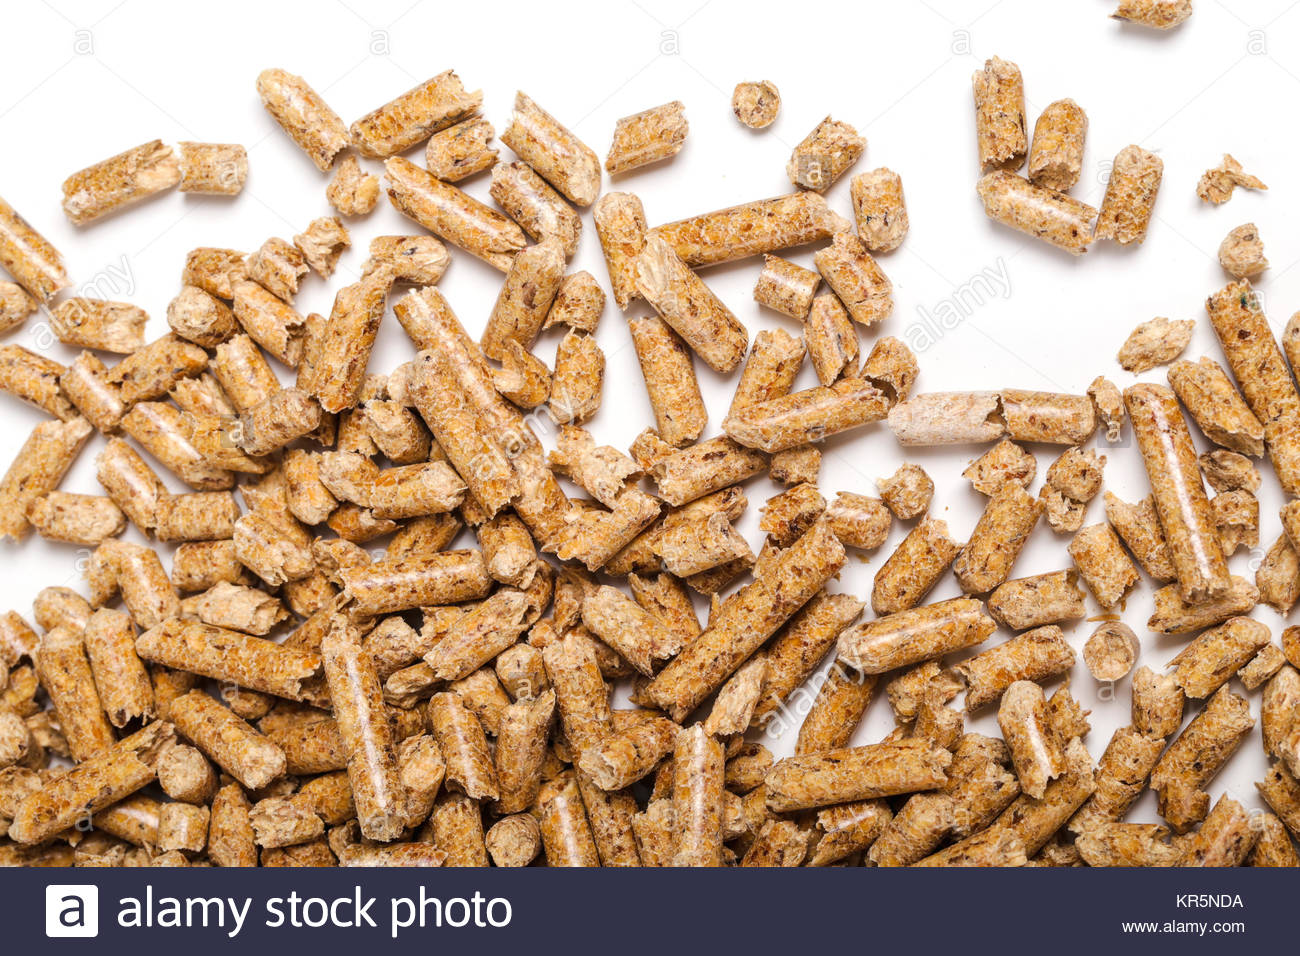 Compressed Pellets Stock Photos Amp Compressed Pellets Stock